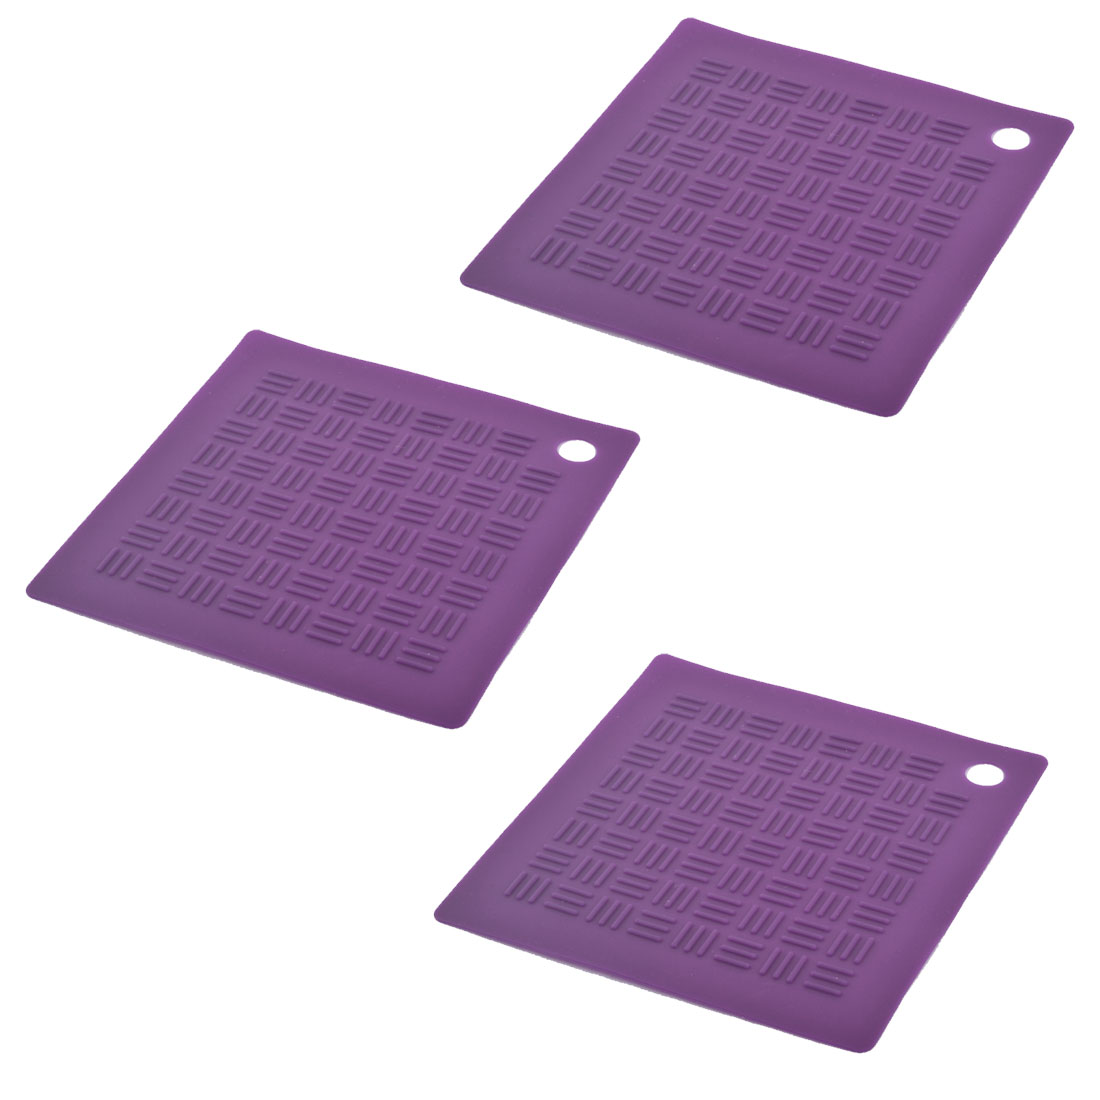 Silicone Square Nonslip Table Heat Resistant Mat Coaster Cushion Placemat Pad 3pcs